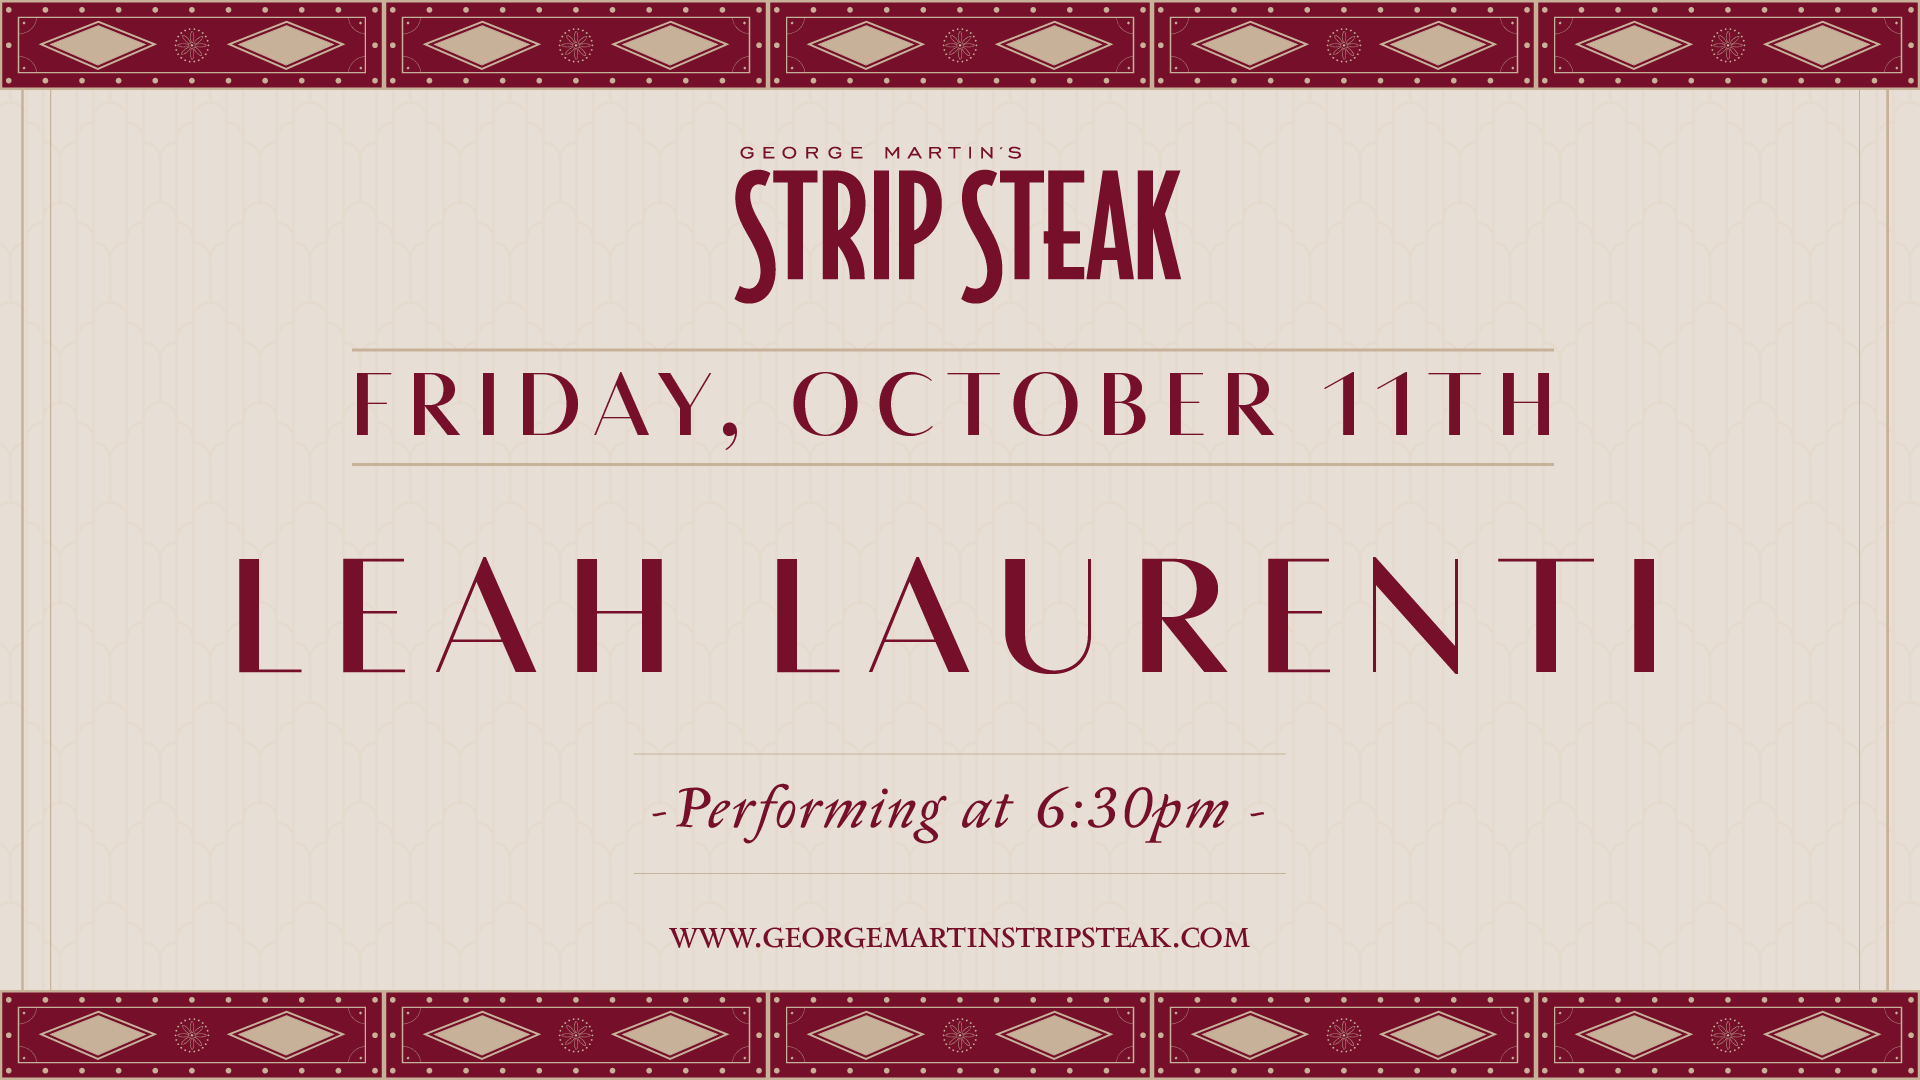 Flyer for Live Music with Leah Laurenti at Strip Steal on Friday, October 11th at 6:30pm